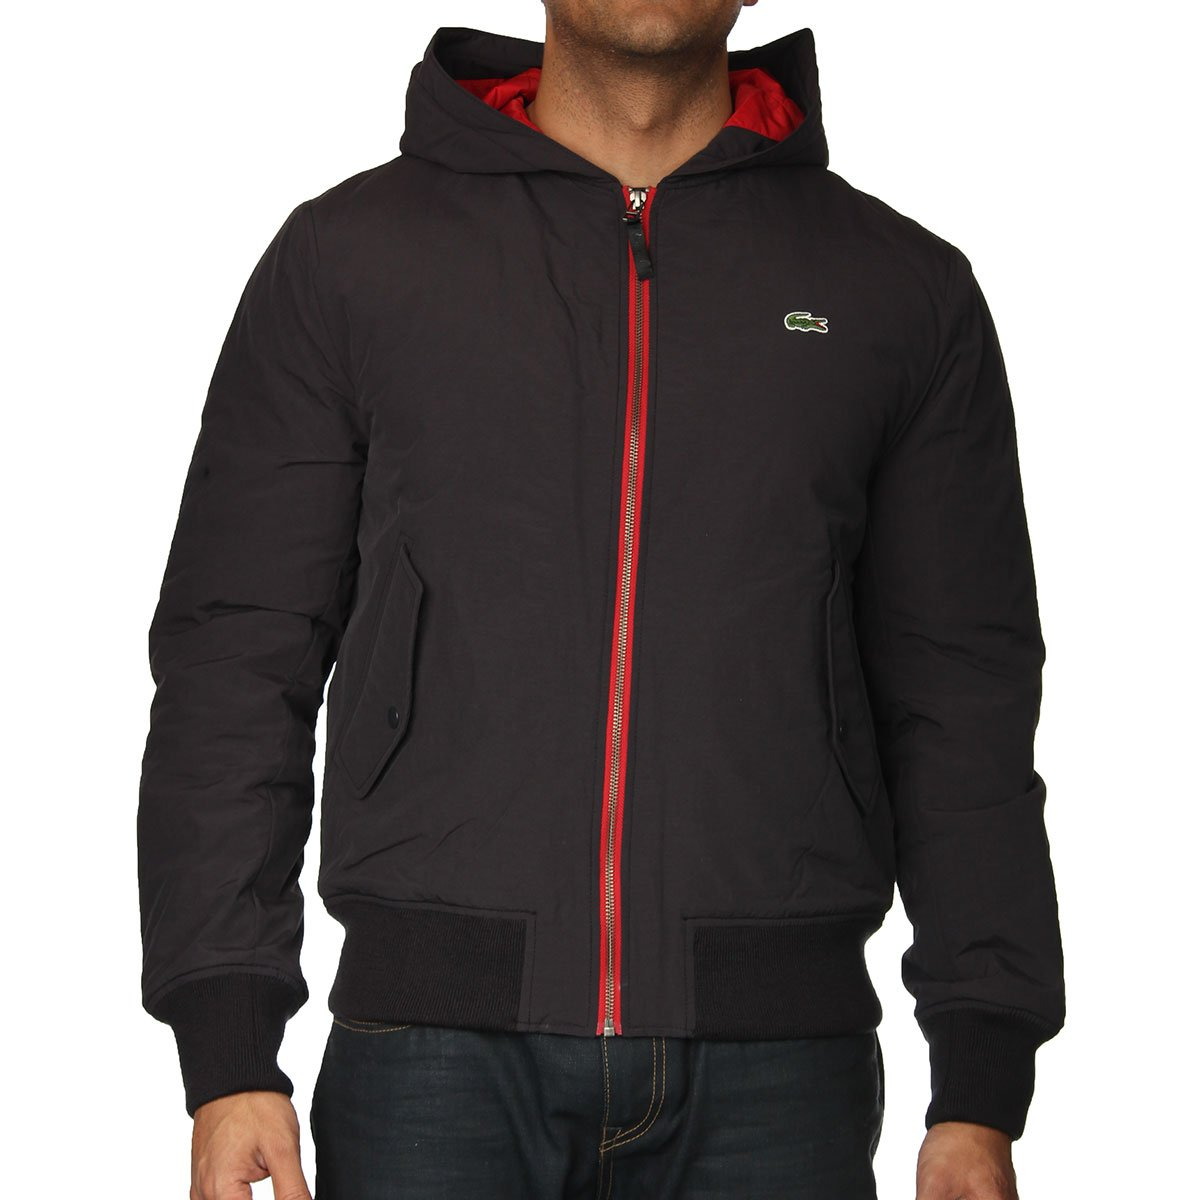 lacoste bh3350 jacket lacoste from the menswear site uk. Black Bedroom Furniture Sets. Home Design Ideas